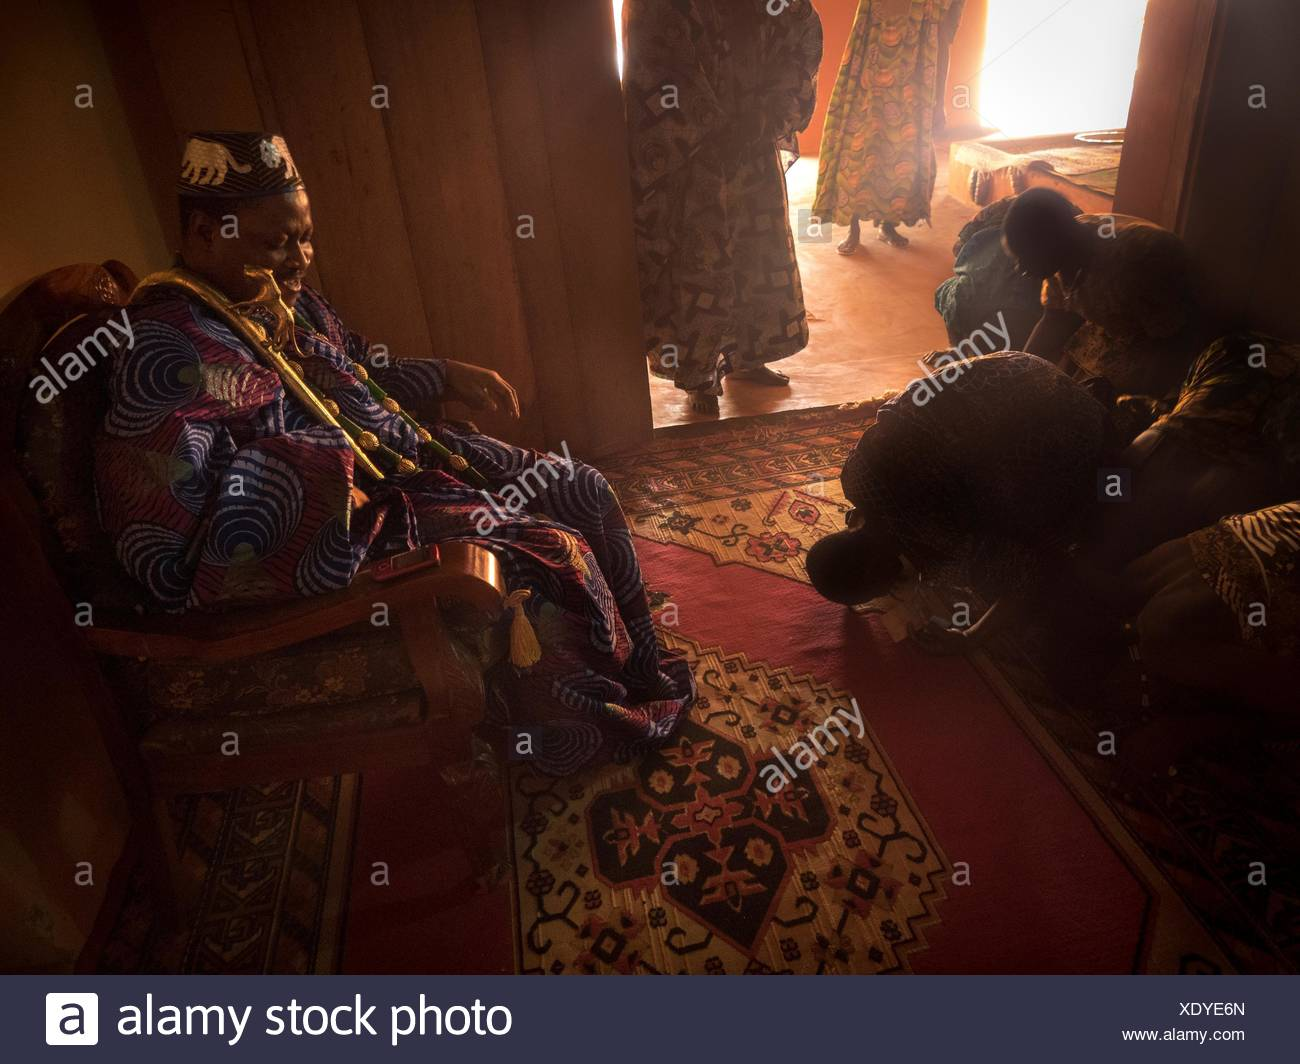 Servants prostrate themselves before the King of Agonlin. - Stock Image